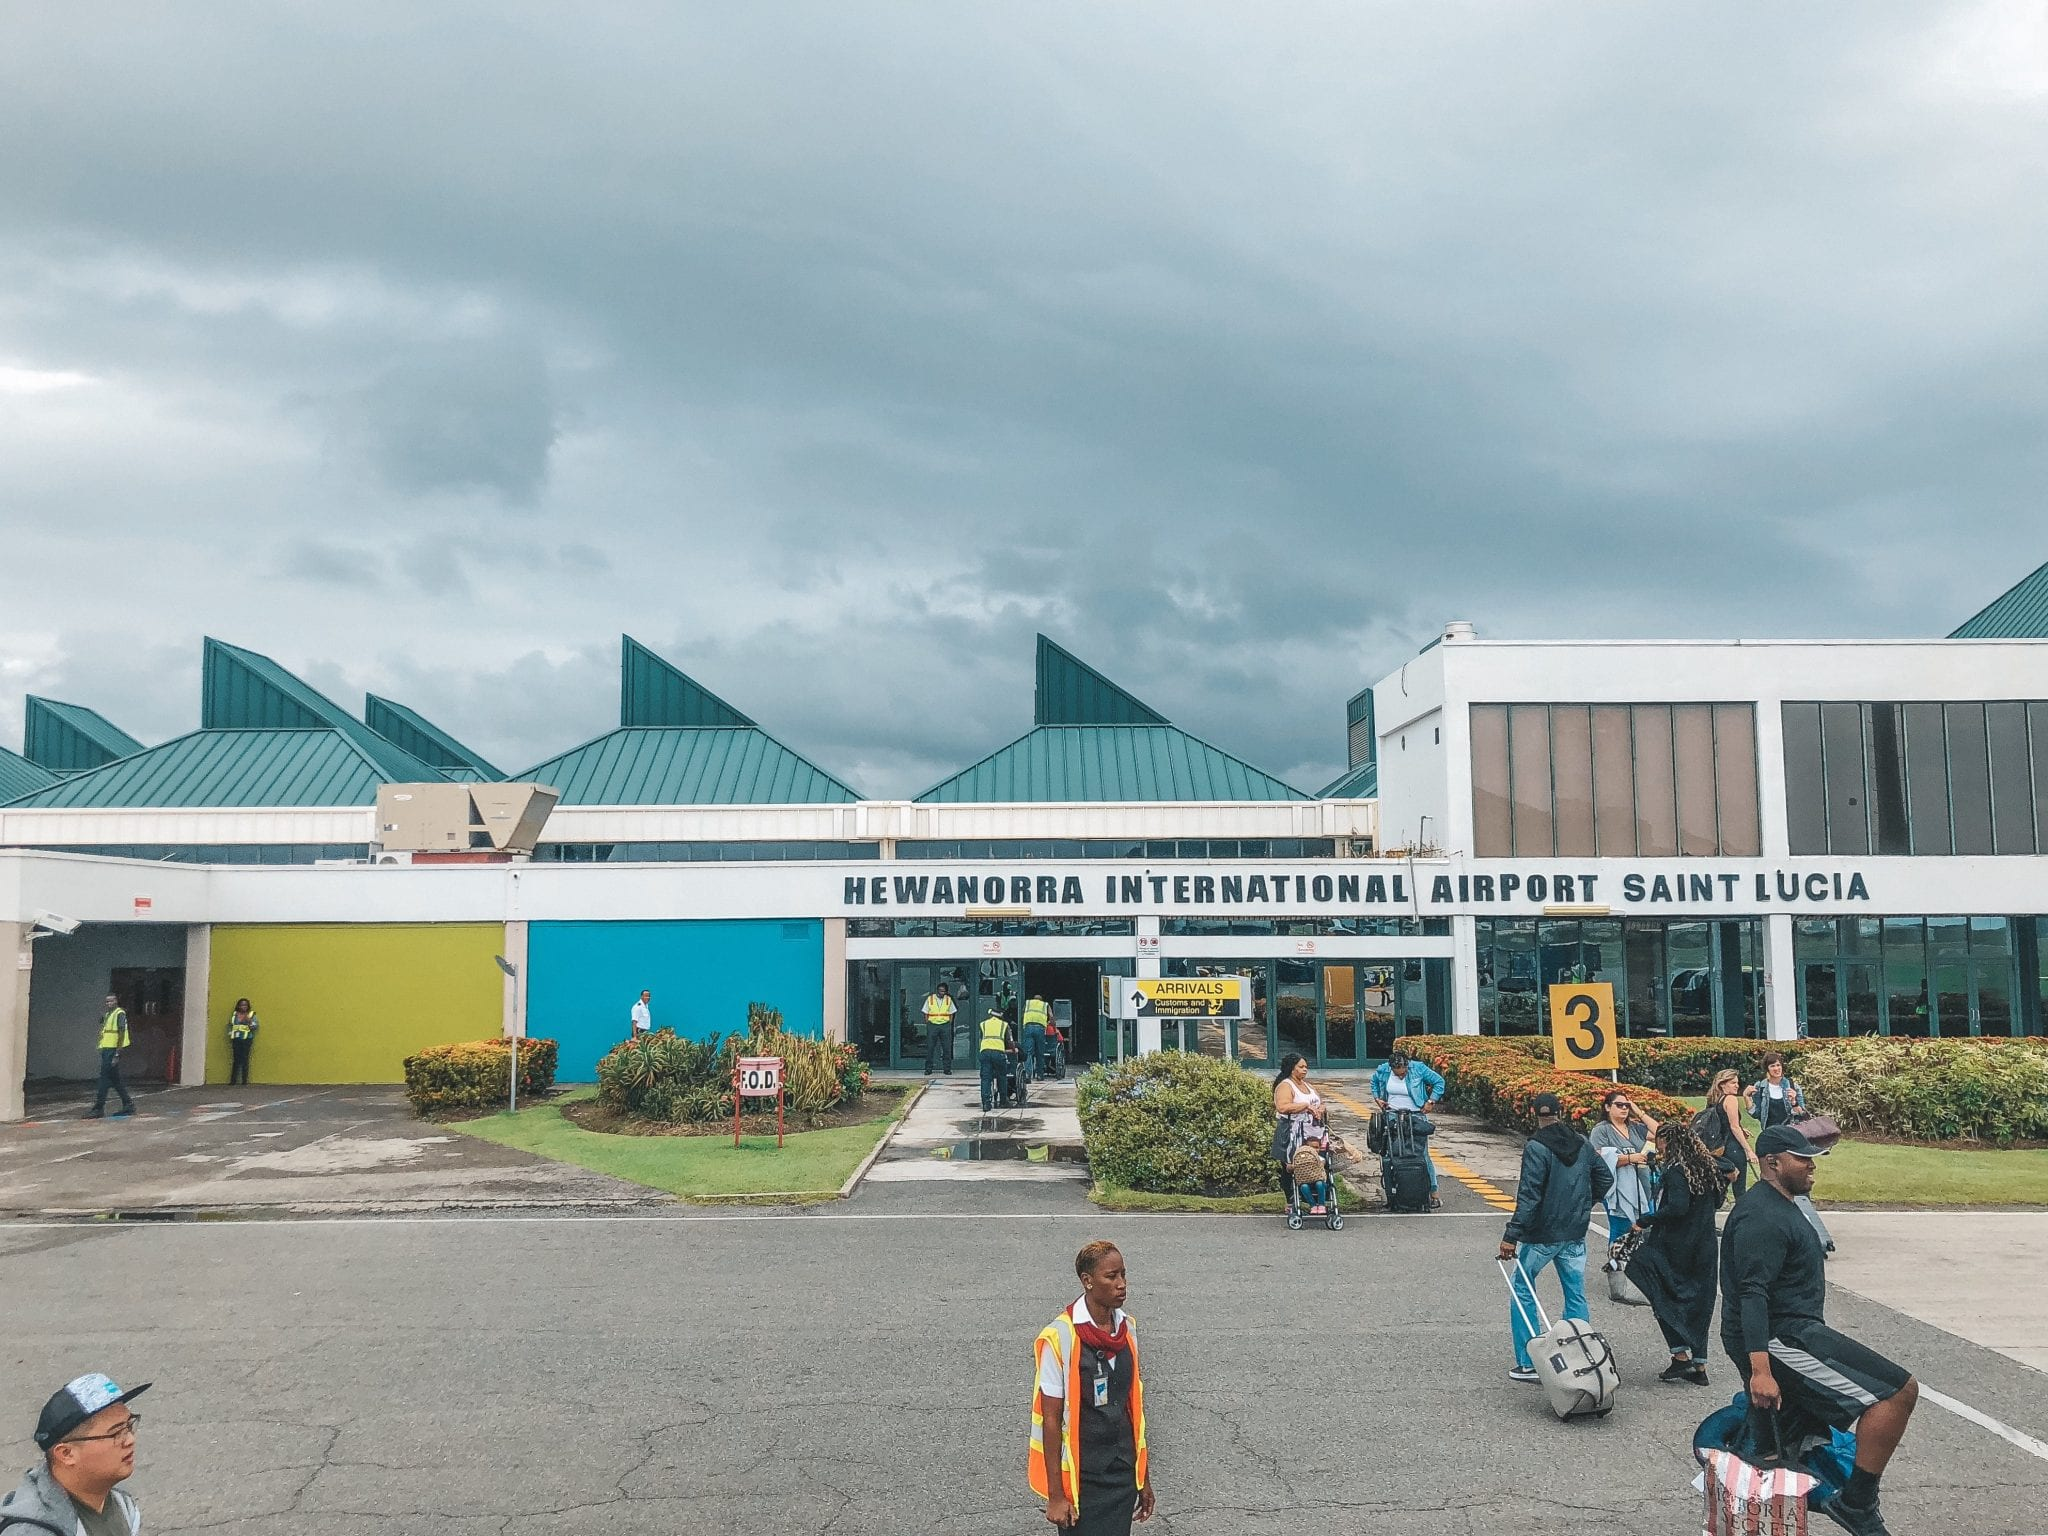 St. Lucia Airport -Hewanorra International Airport